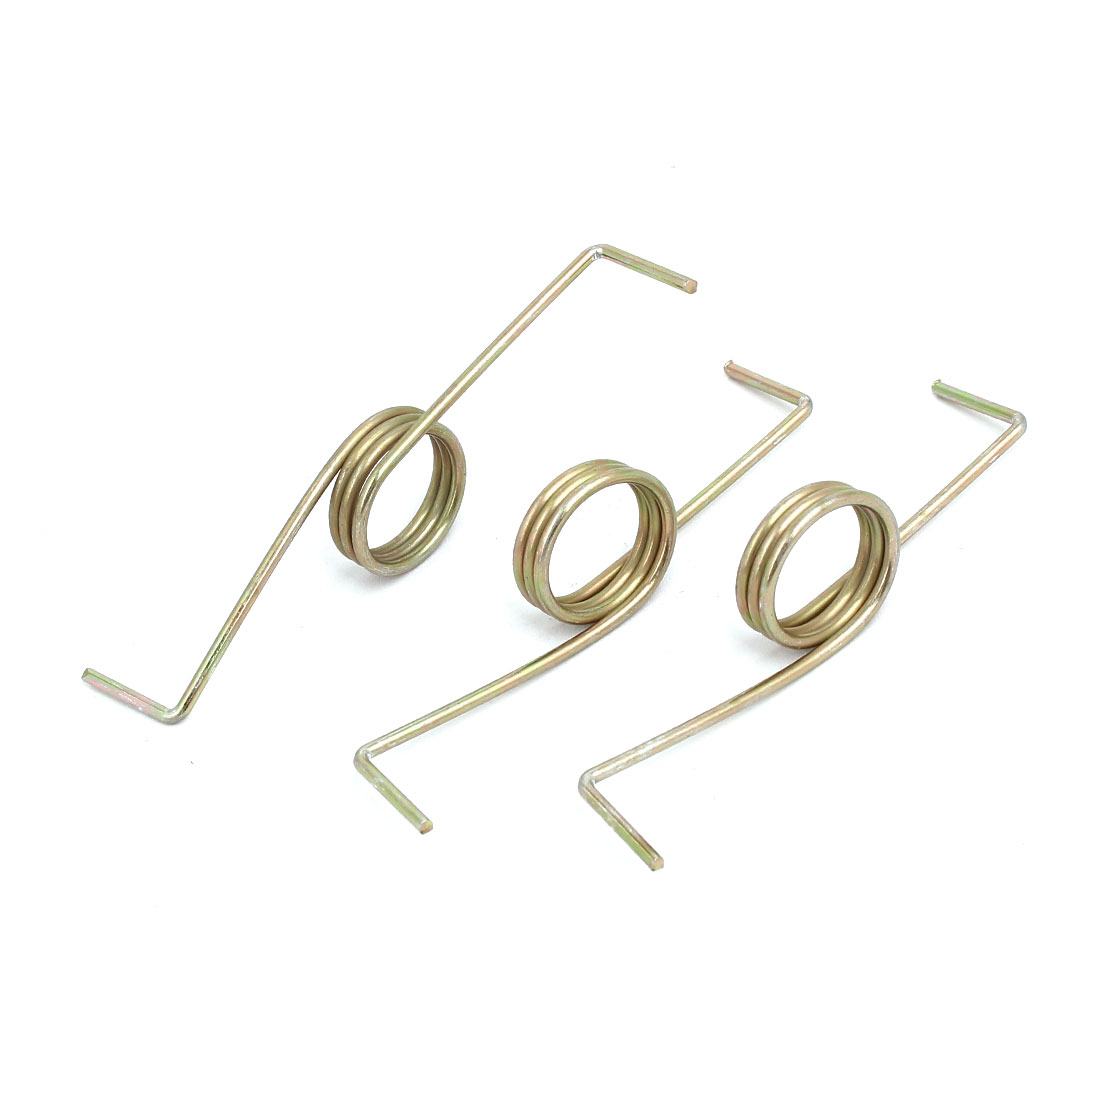 20mm Dia Suspension Springs 3pcs for Washing Machine